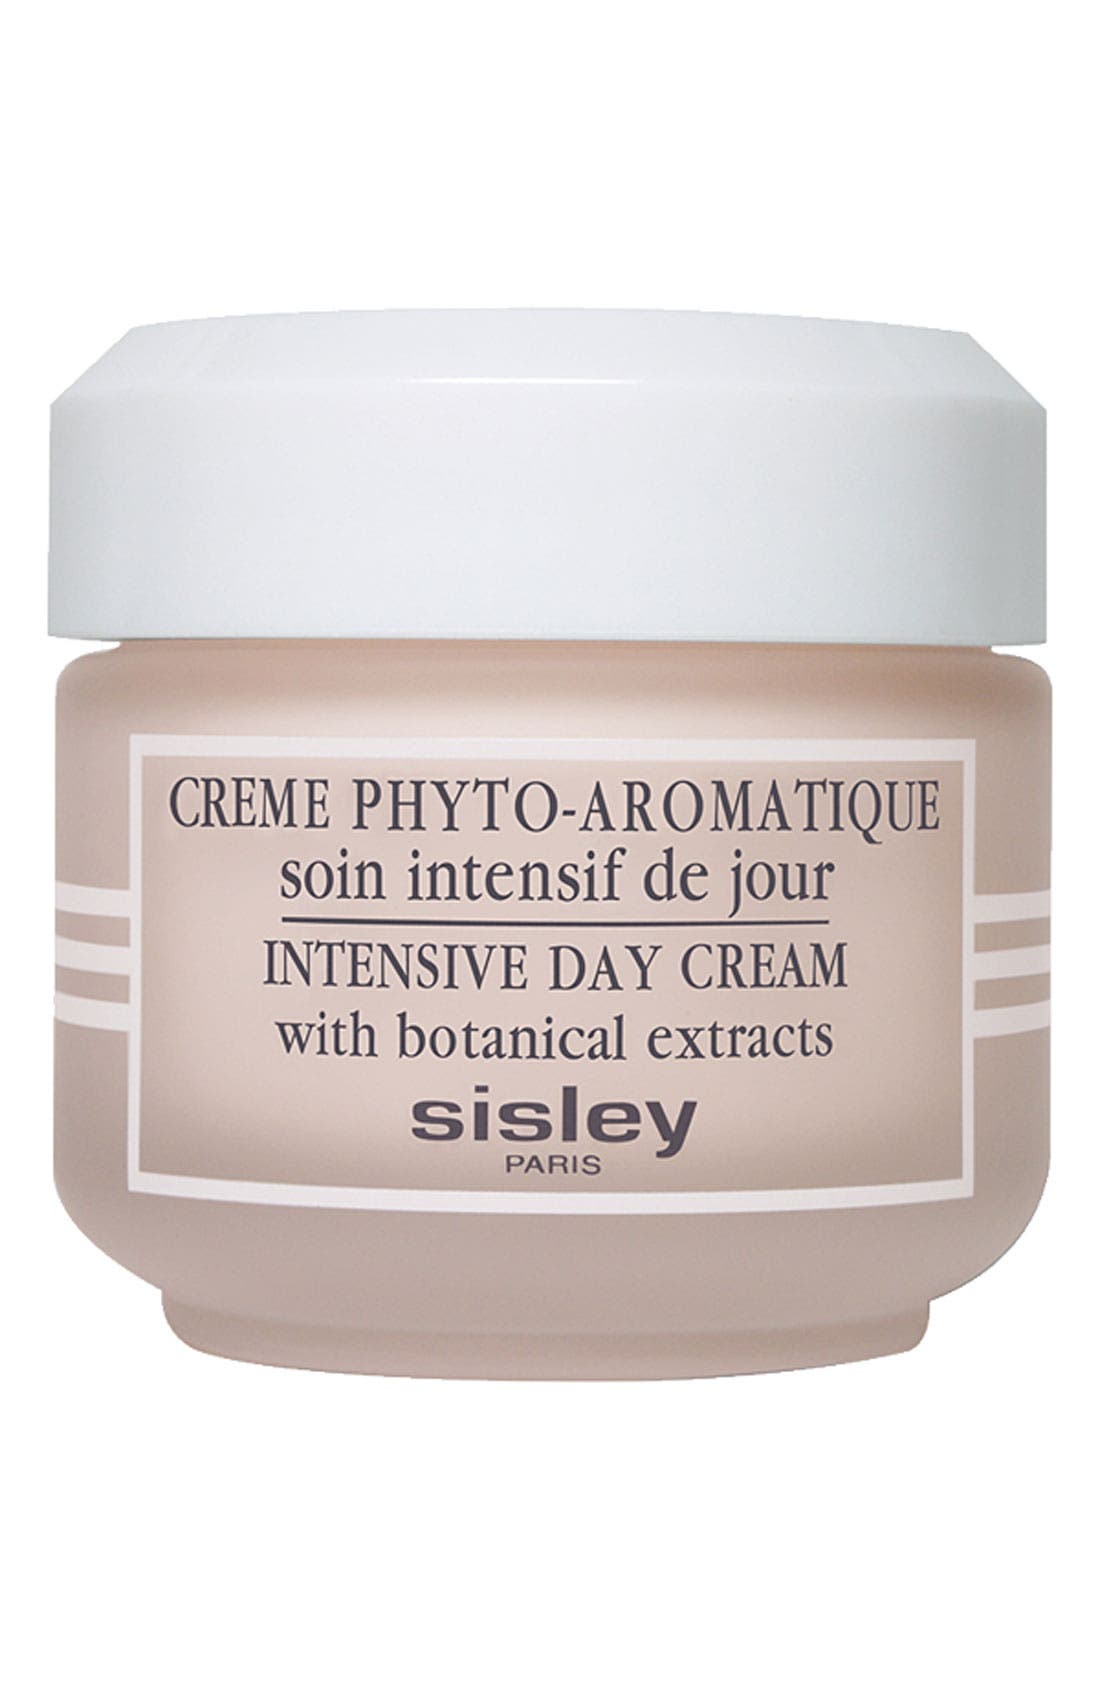 Intensive Day Cream with Botanical Extracts,                             Main thumbnail 1, color,                             NONE